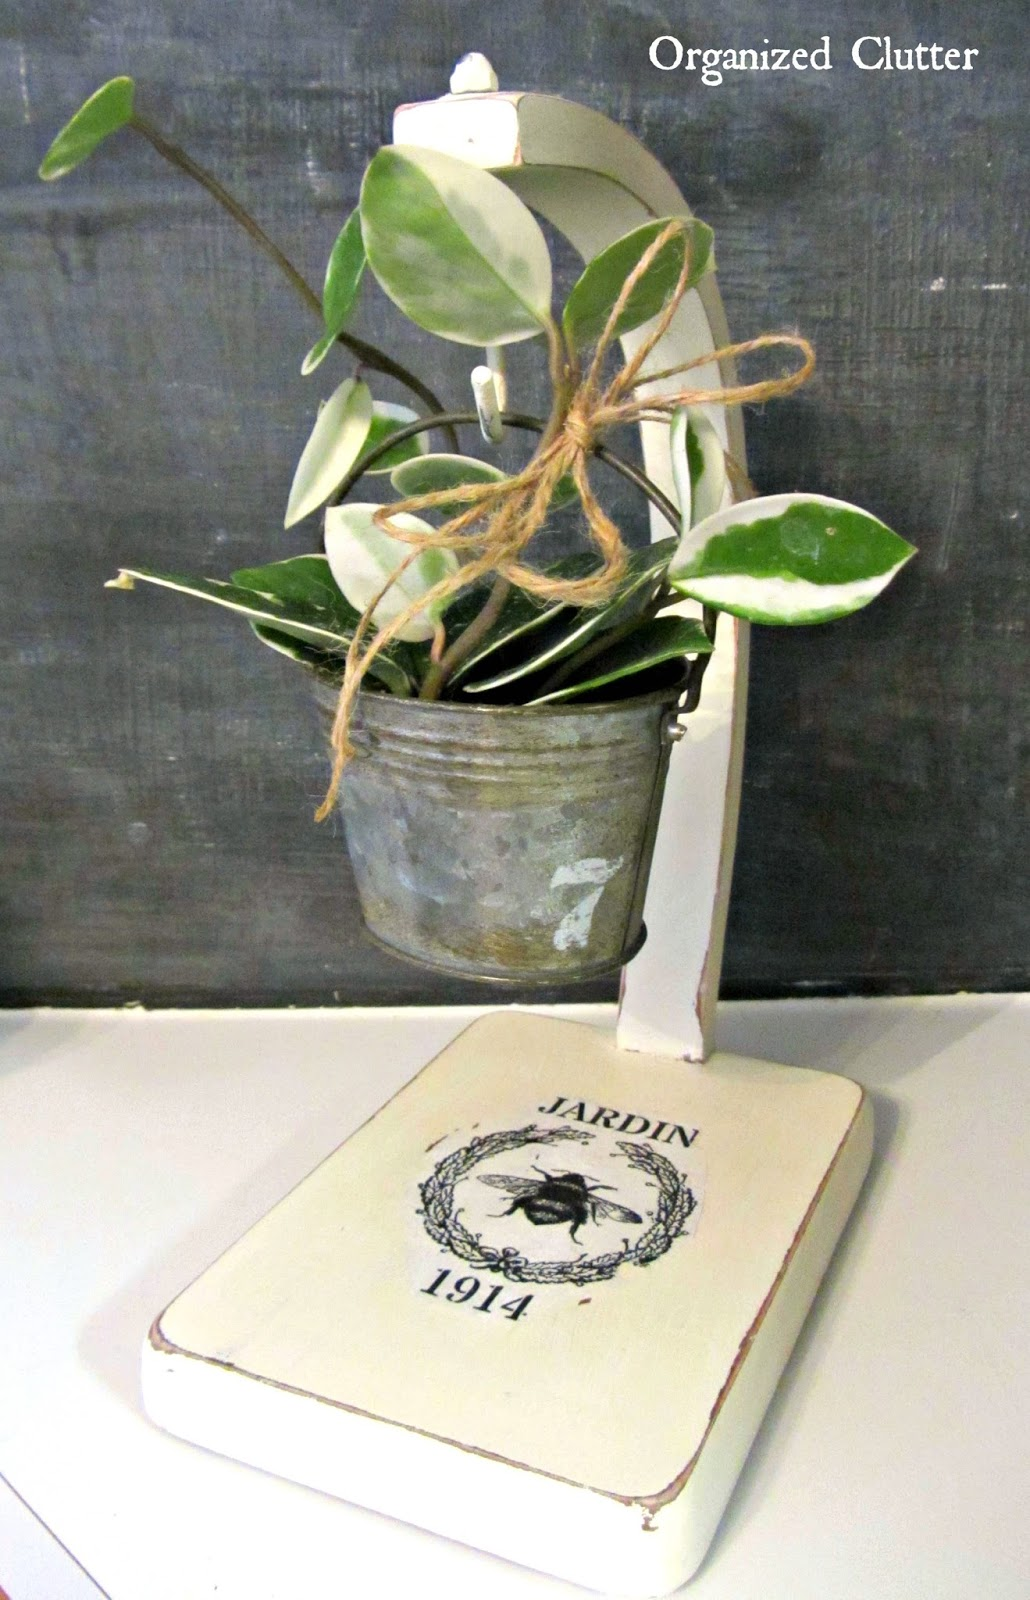 Wax Plant Displayed on Upcycled Banana Stand www.organizedclutterqueen.blogspot.com